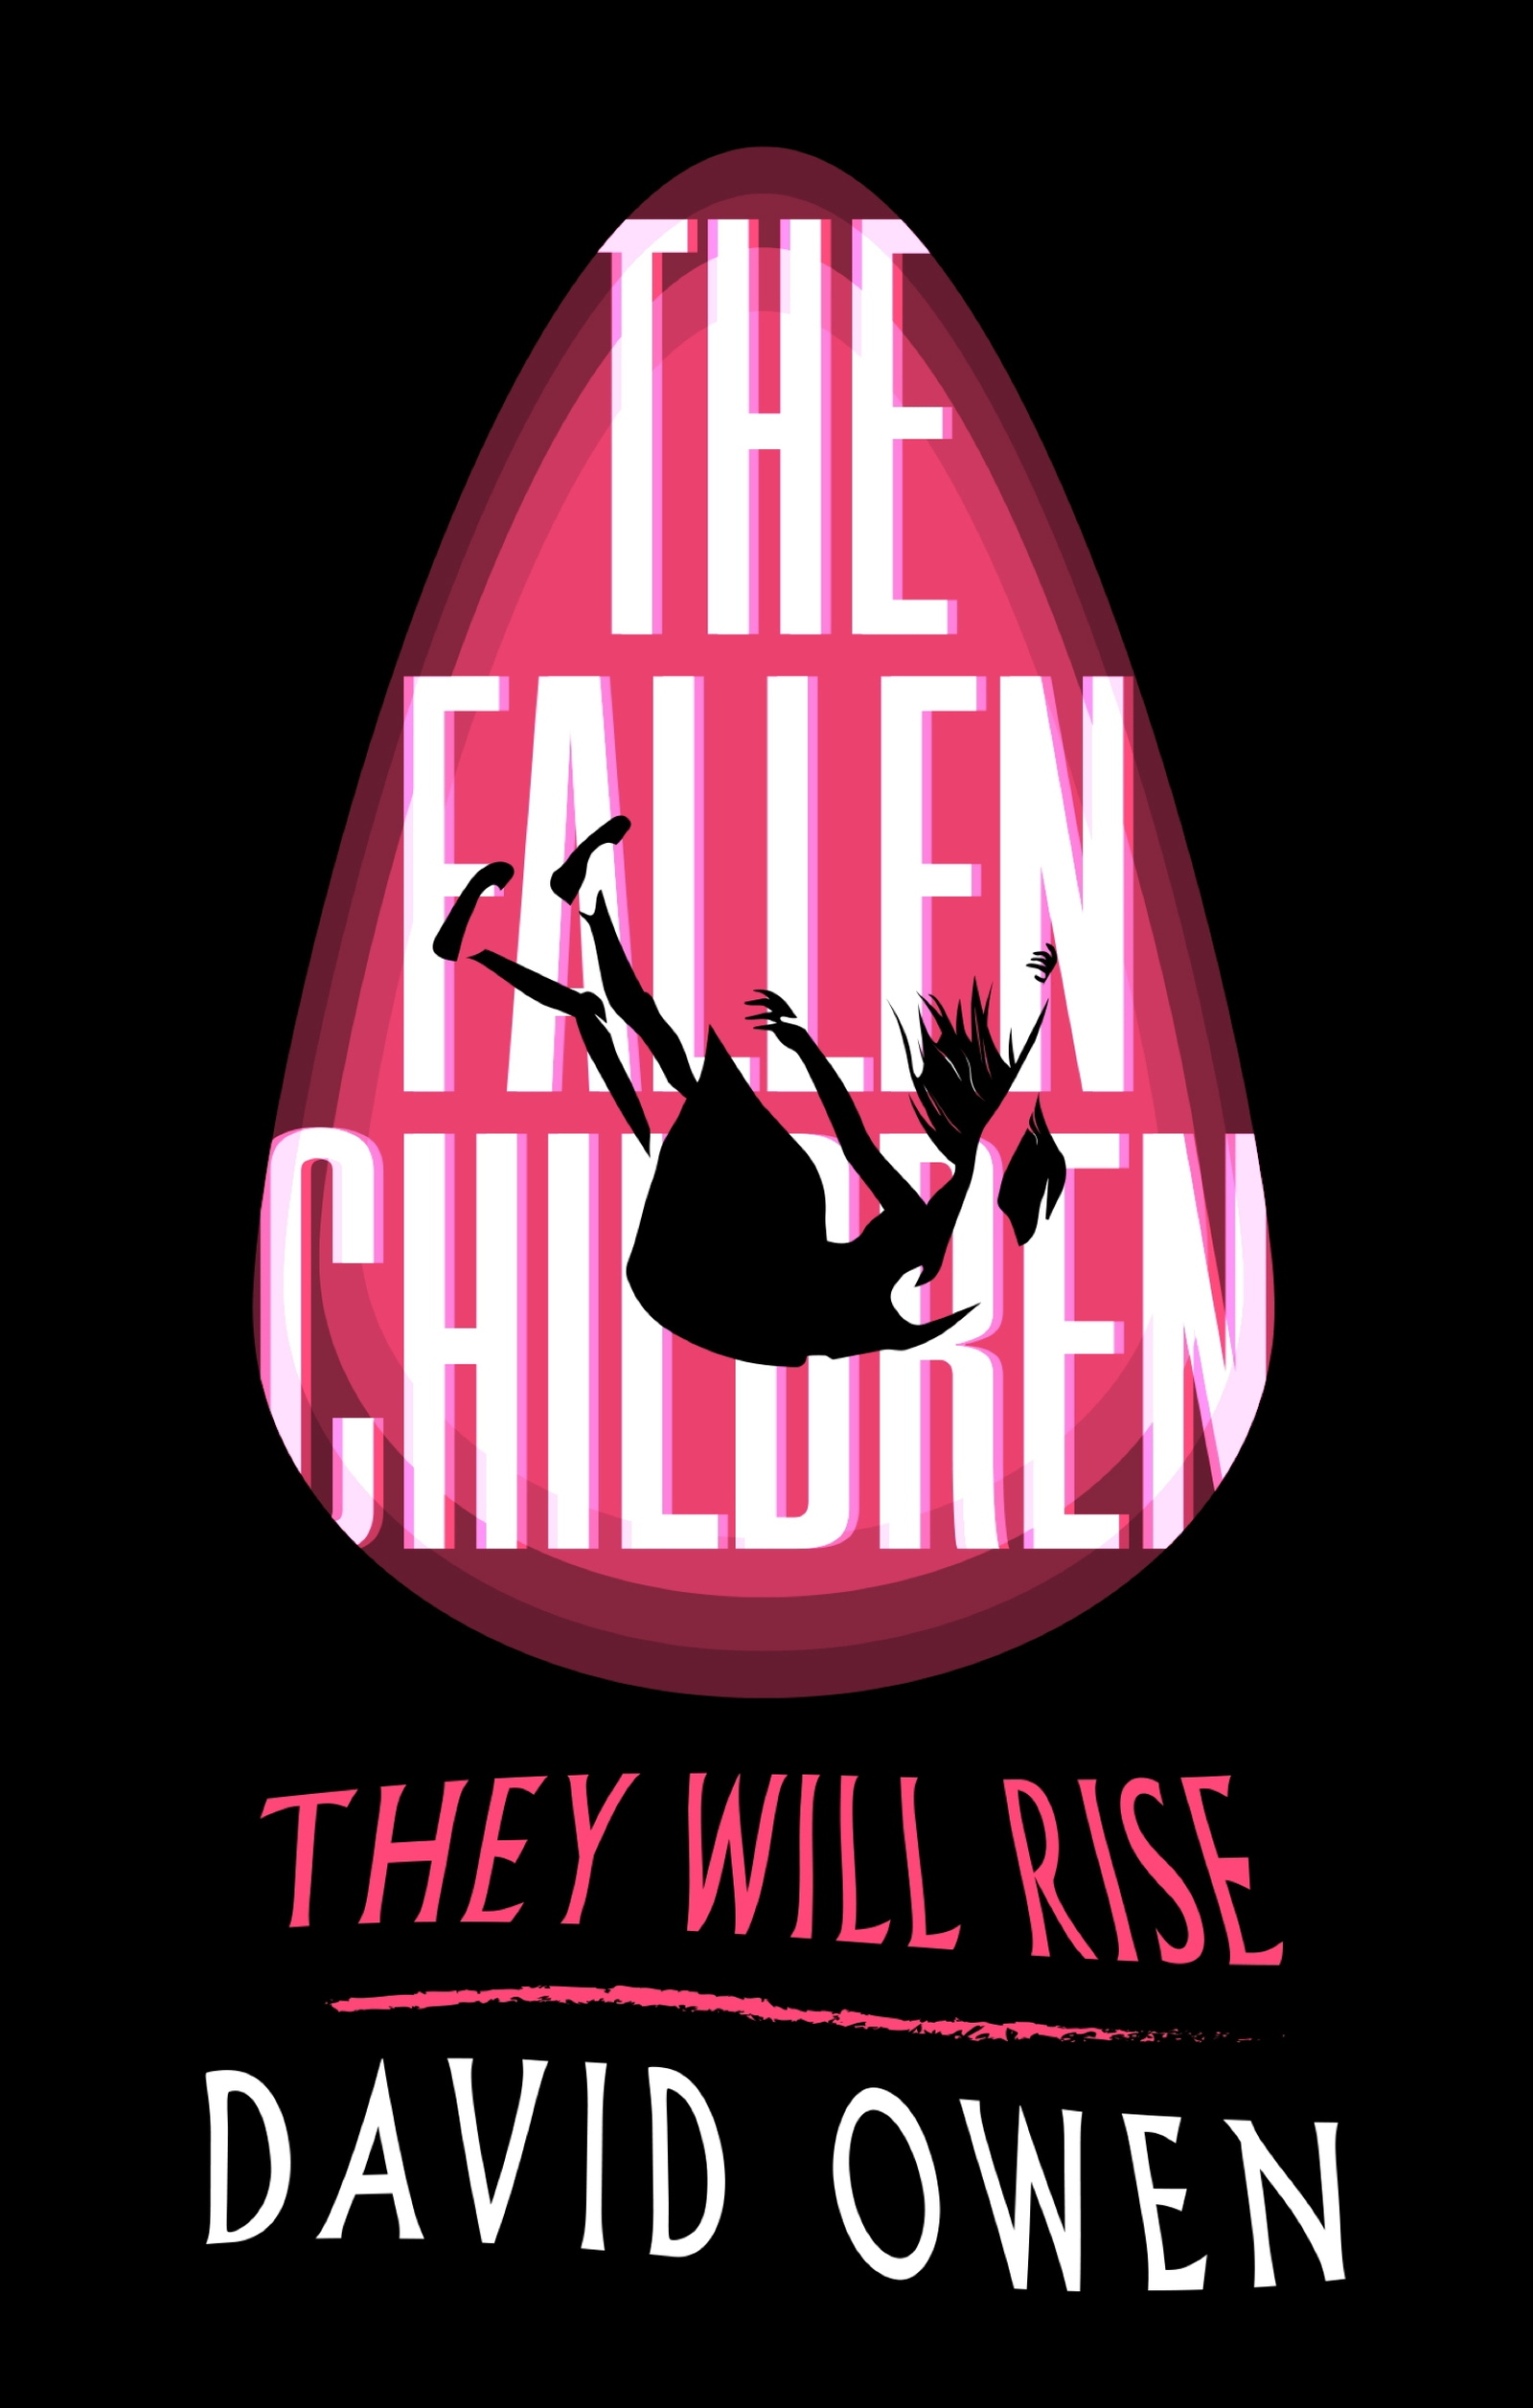 The Fallen Children